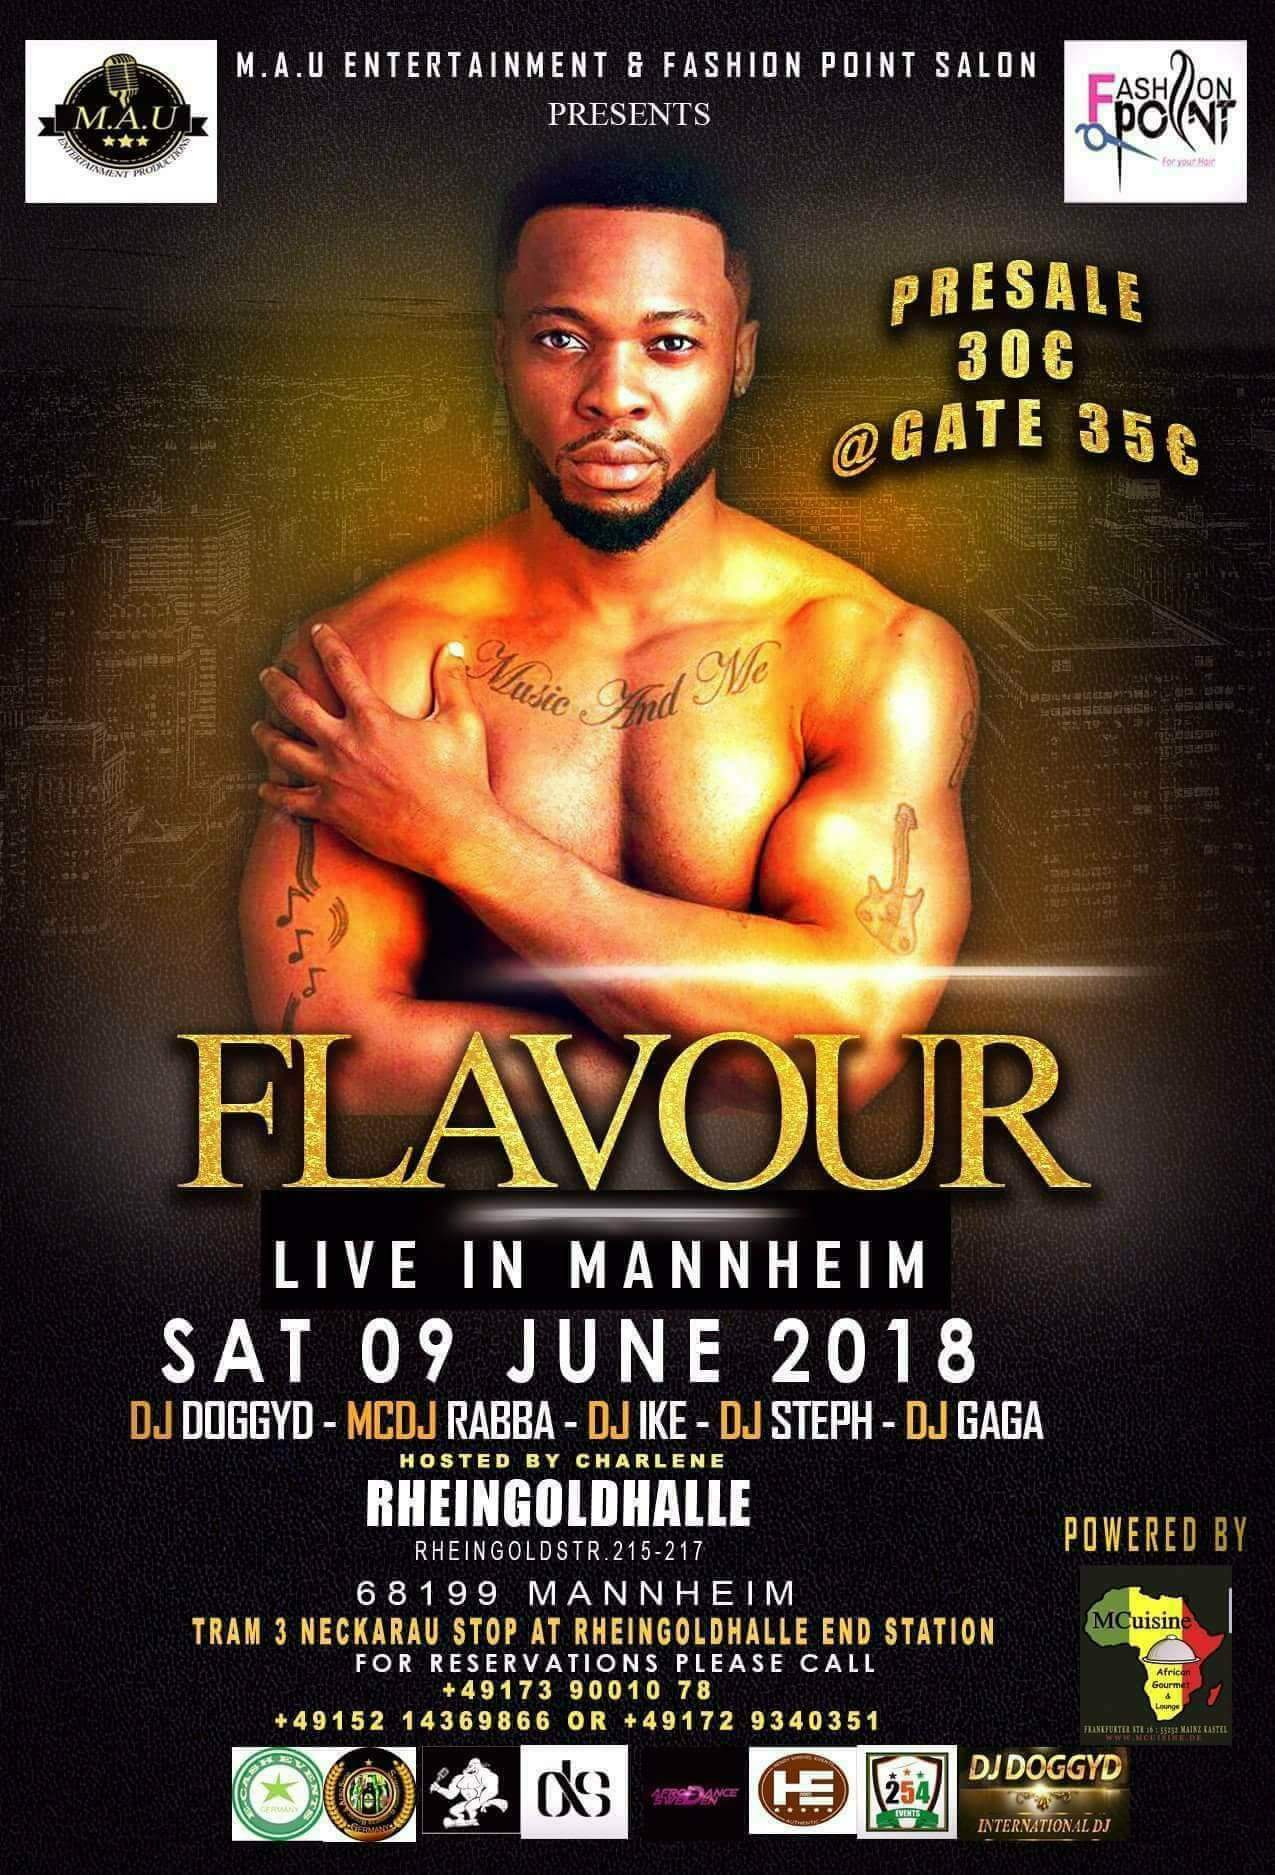 Flavour Featuring charlene